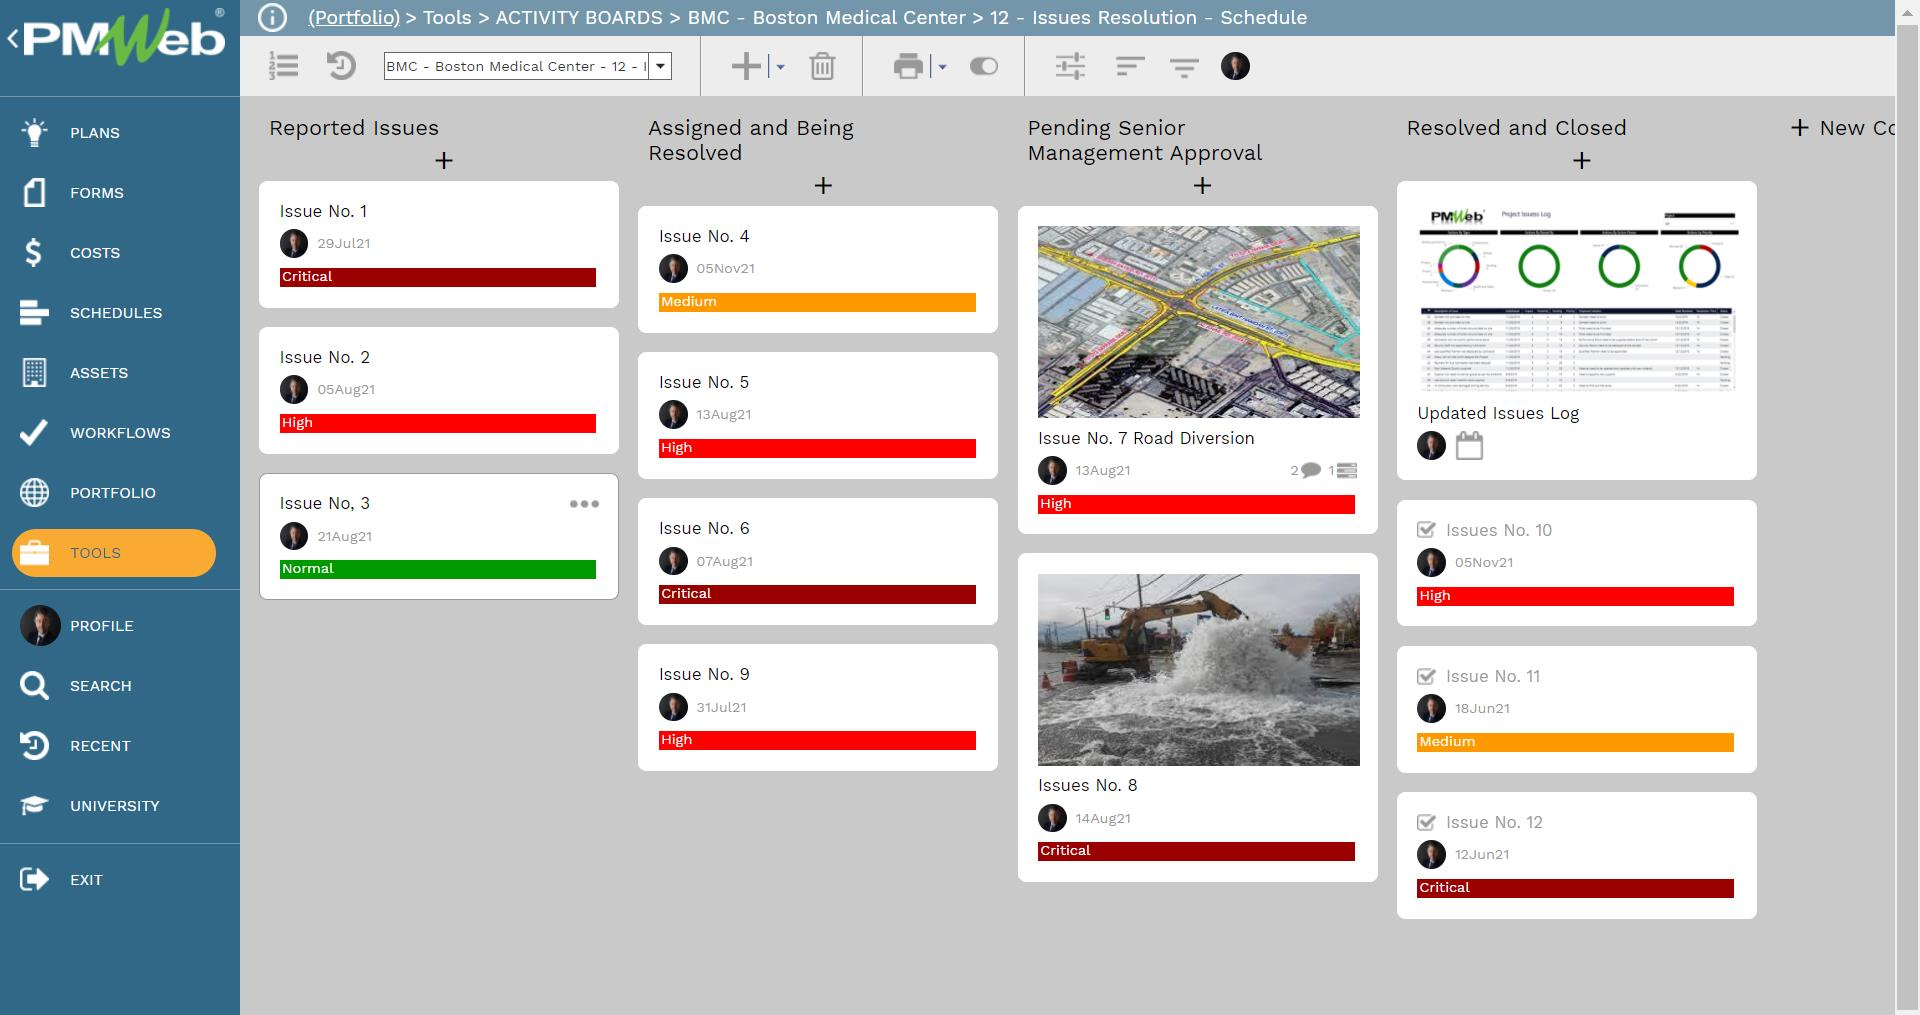 PMWeb 7 Tools Activity Boards BMC Boston Medical Center 12 Issues Resolution Schedule